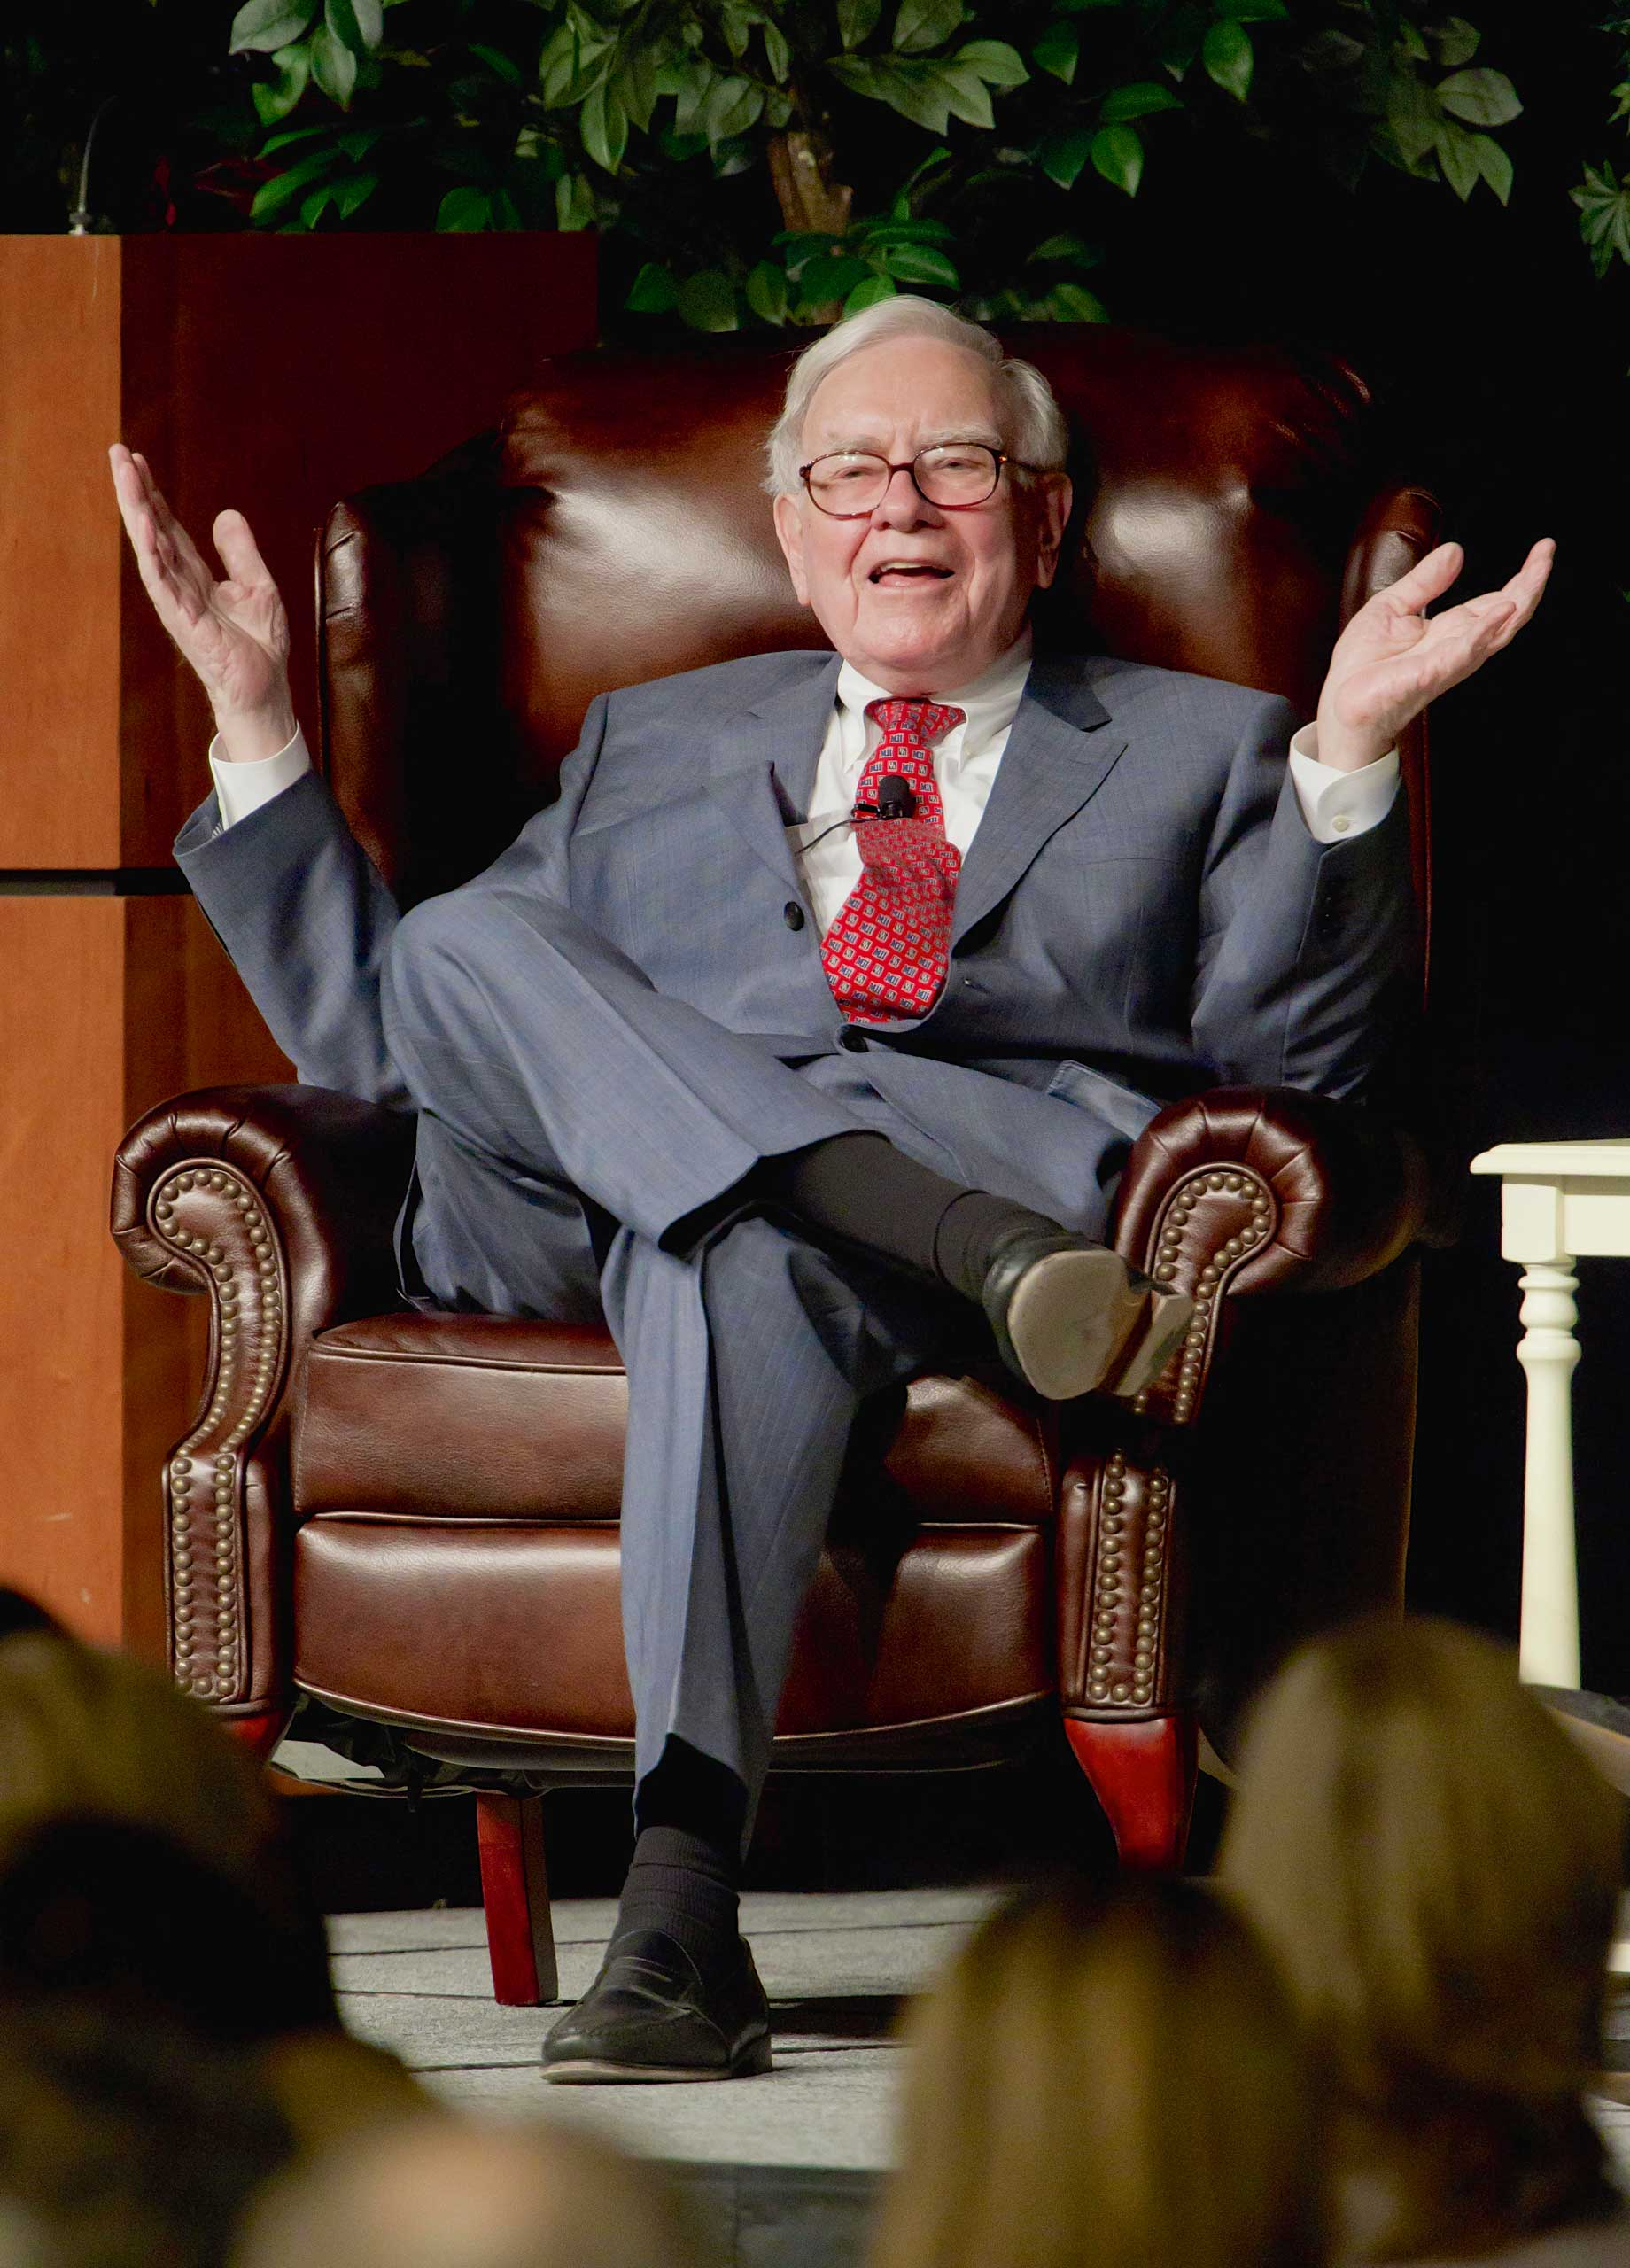 Billionaire investor Warren Buffett speaks in Omaha, Neb., Nov. 14, 2011. Buffett's annual letter to Berkshire Hathaway shareholders is always one of the best-read business documents of the year. The 2015 letter marks the 50th year of Buffett's leadership.